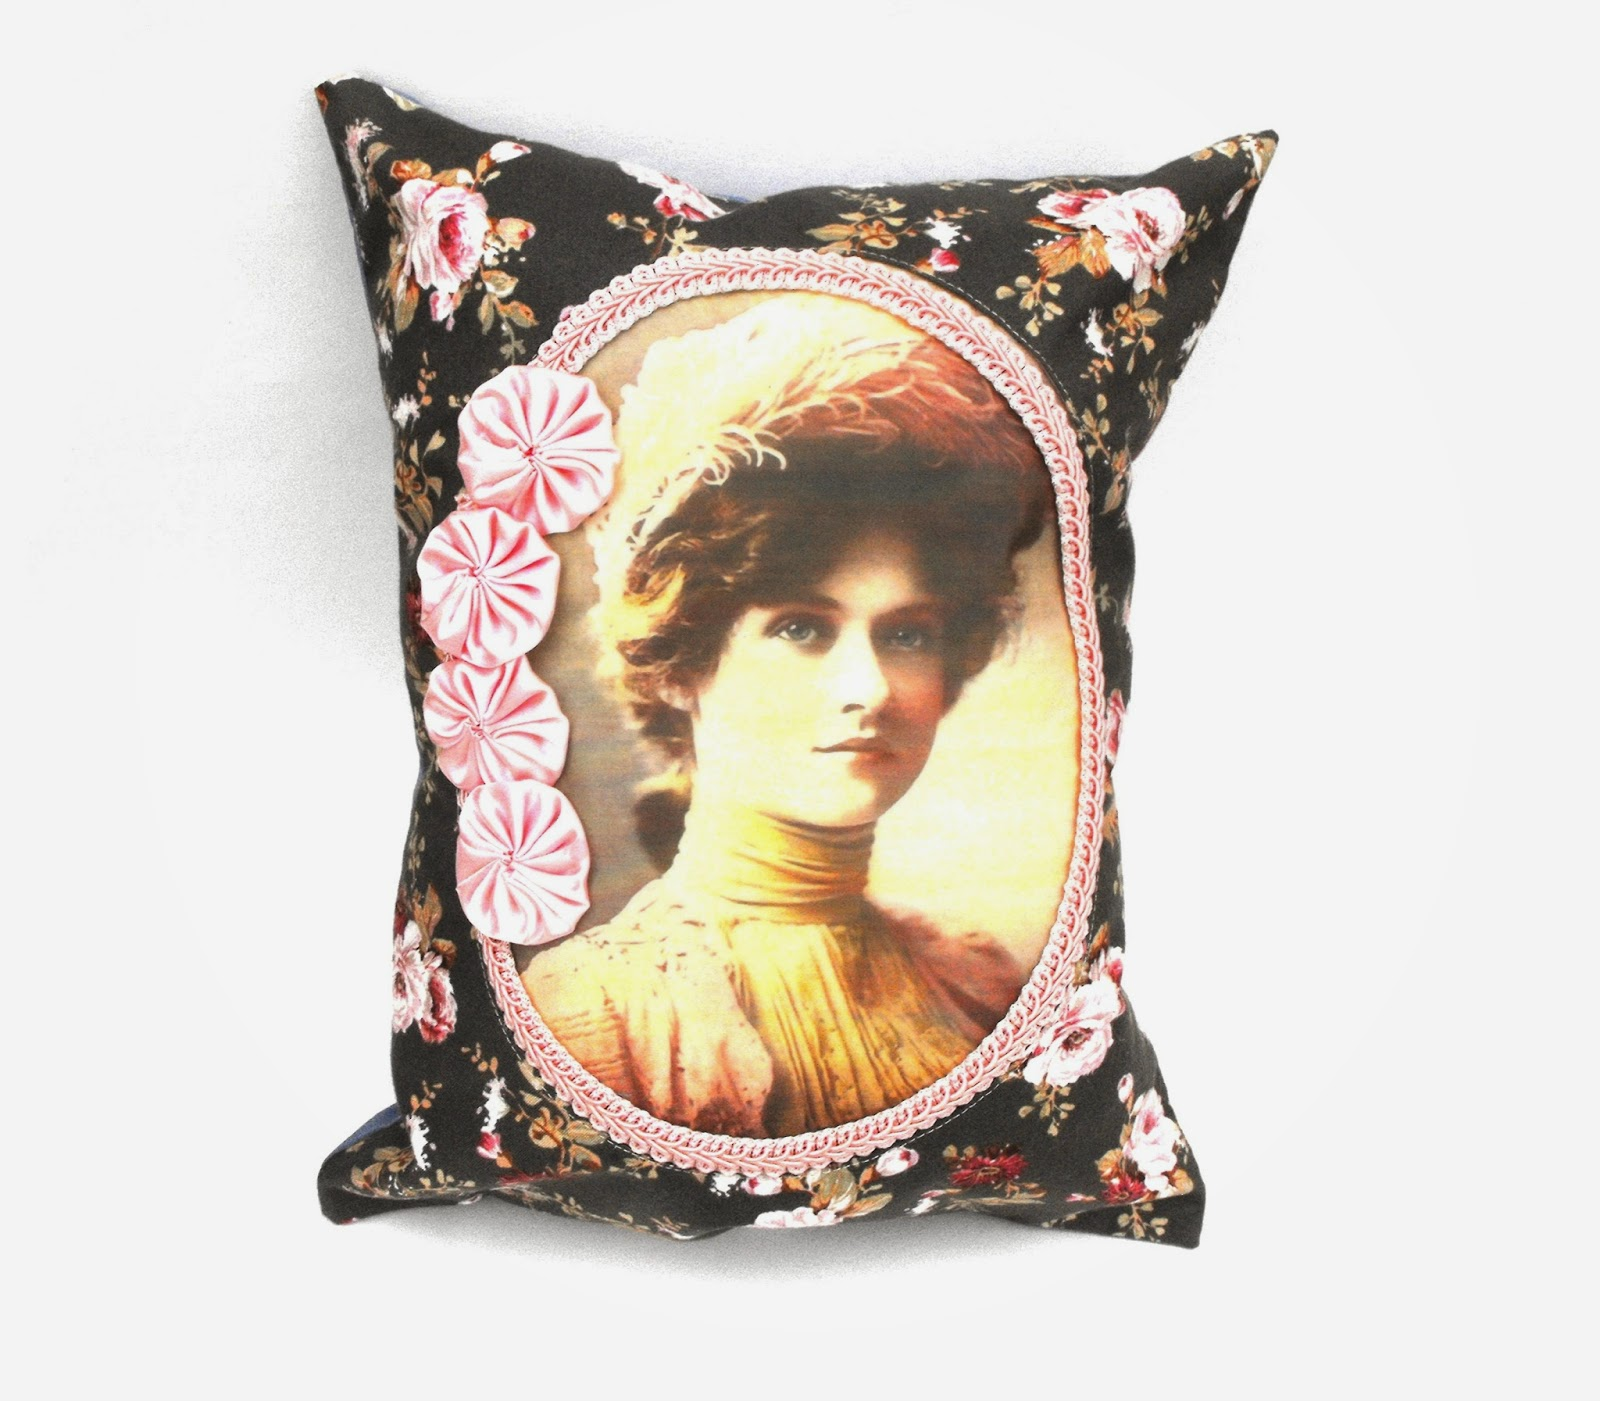 https://www.etsy.com/listing/186566700/grandma-hesson-pillow-victorian-lady?ref=shop_home_active_14&ga_search_query=rose